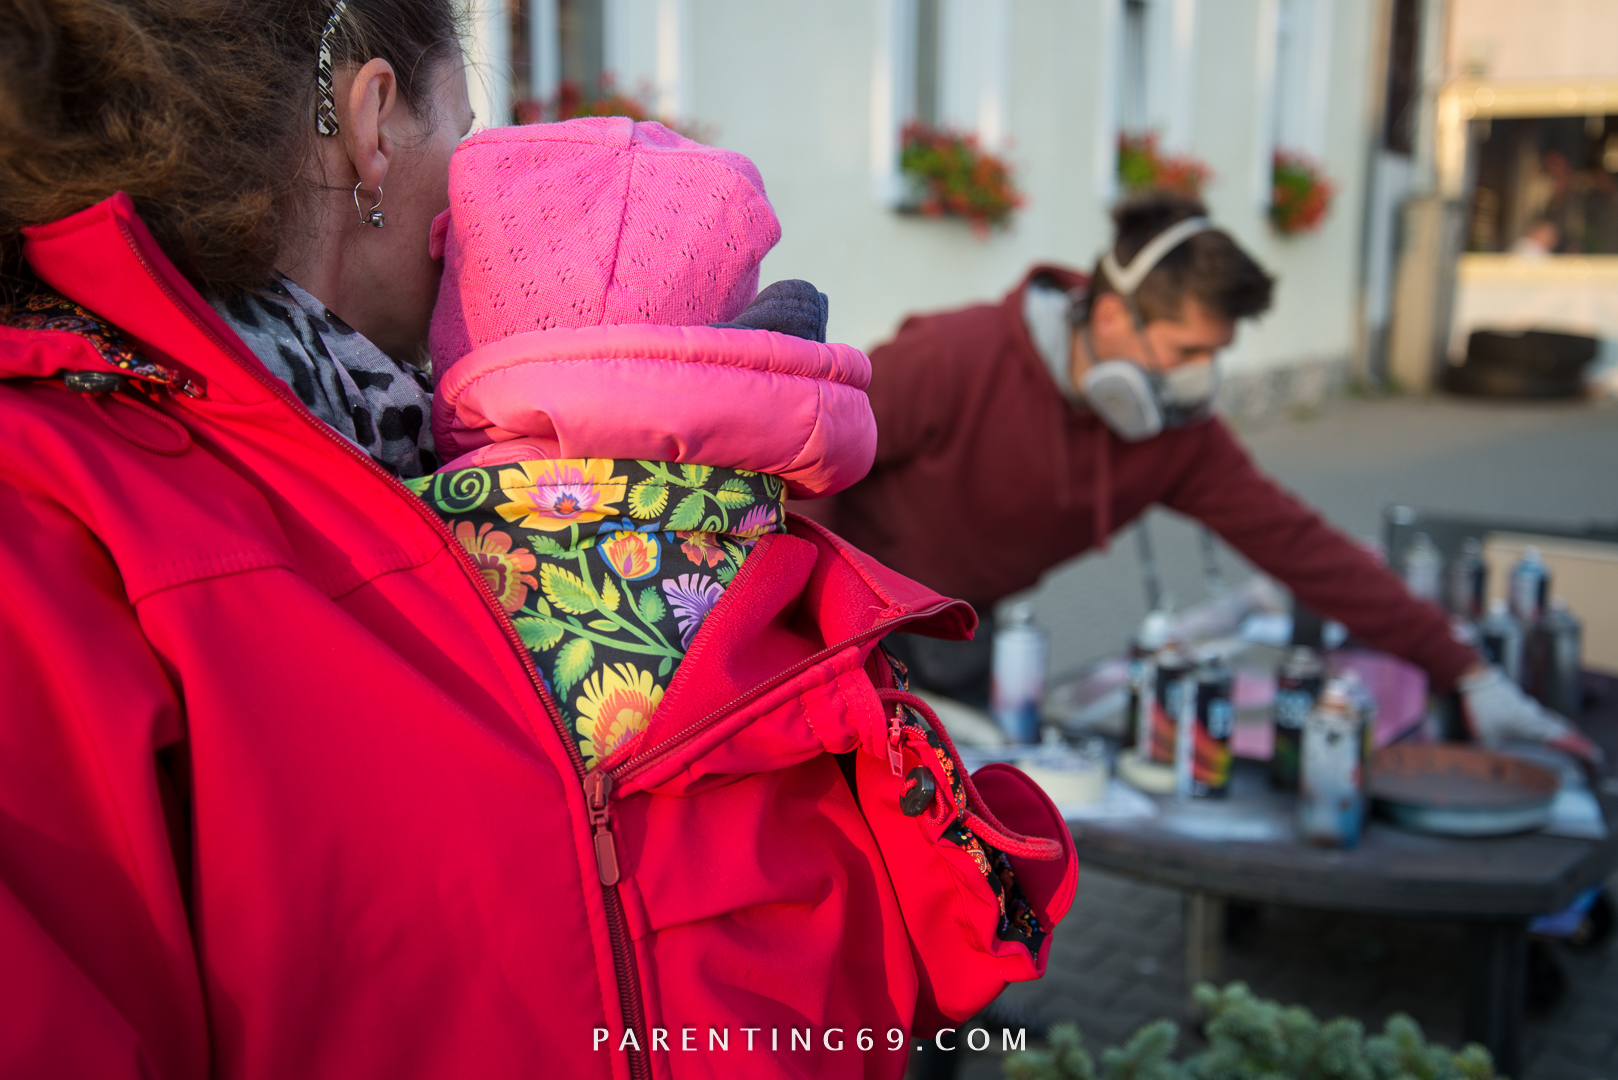 DSC_1730-twiga-babywearing-coat-for-two-red-softshell